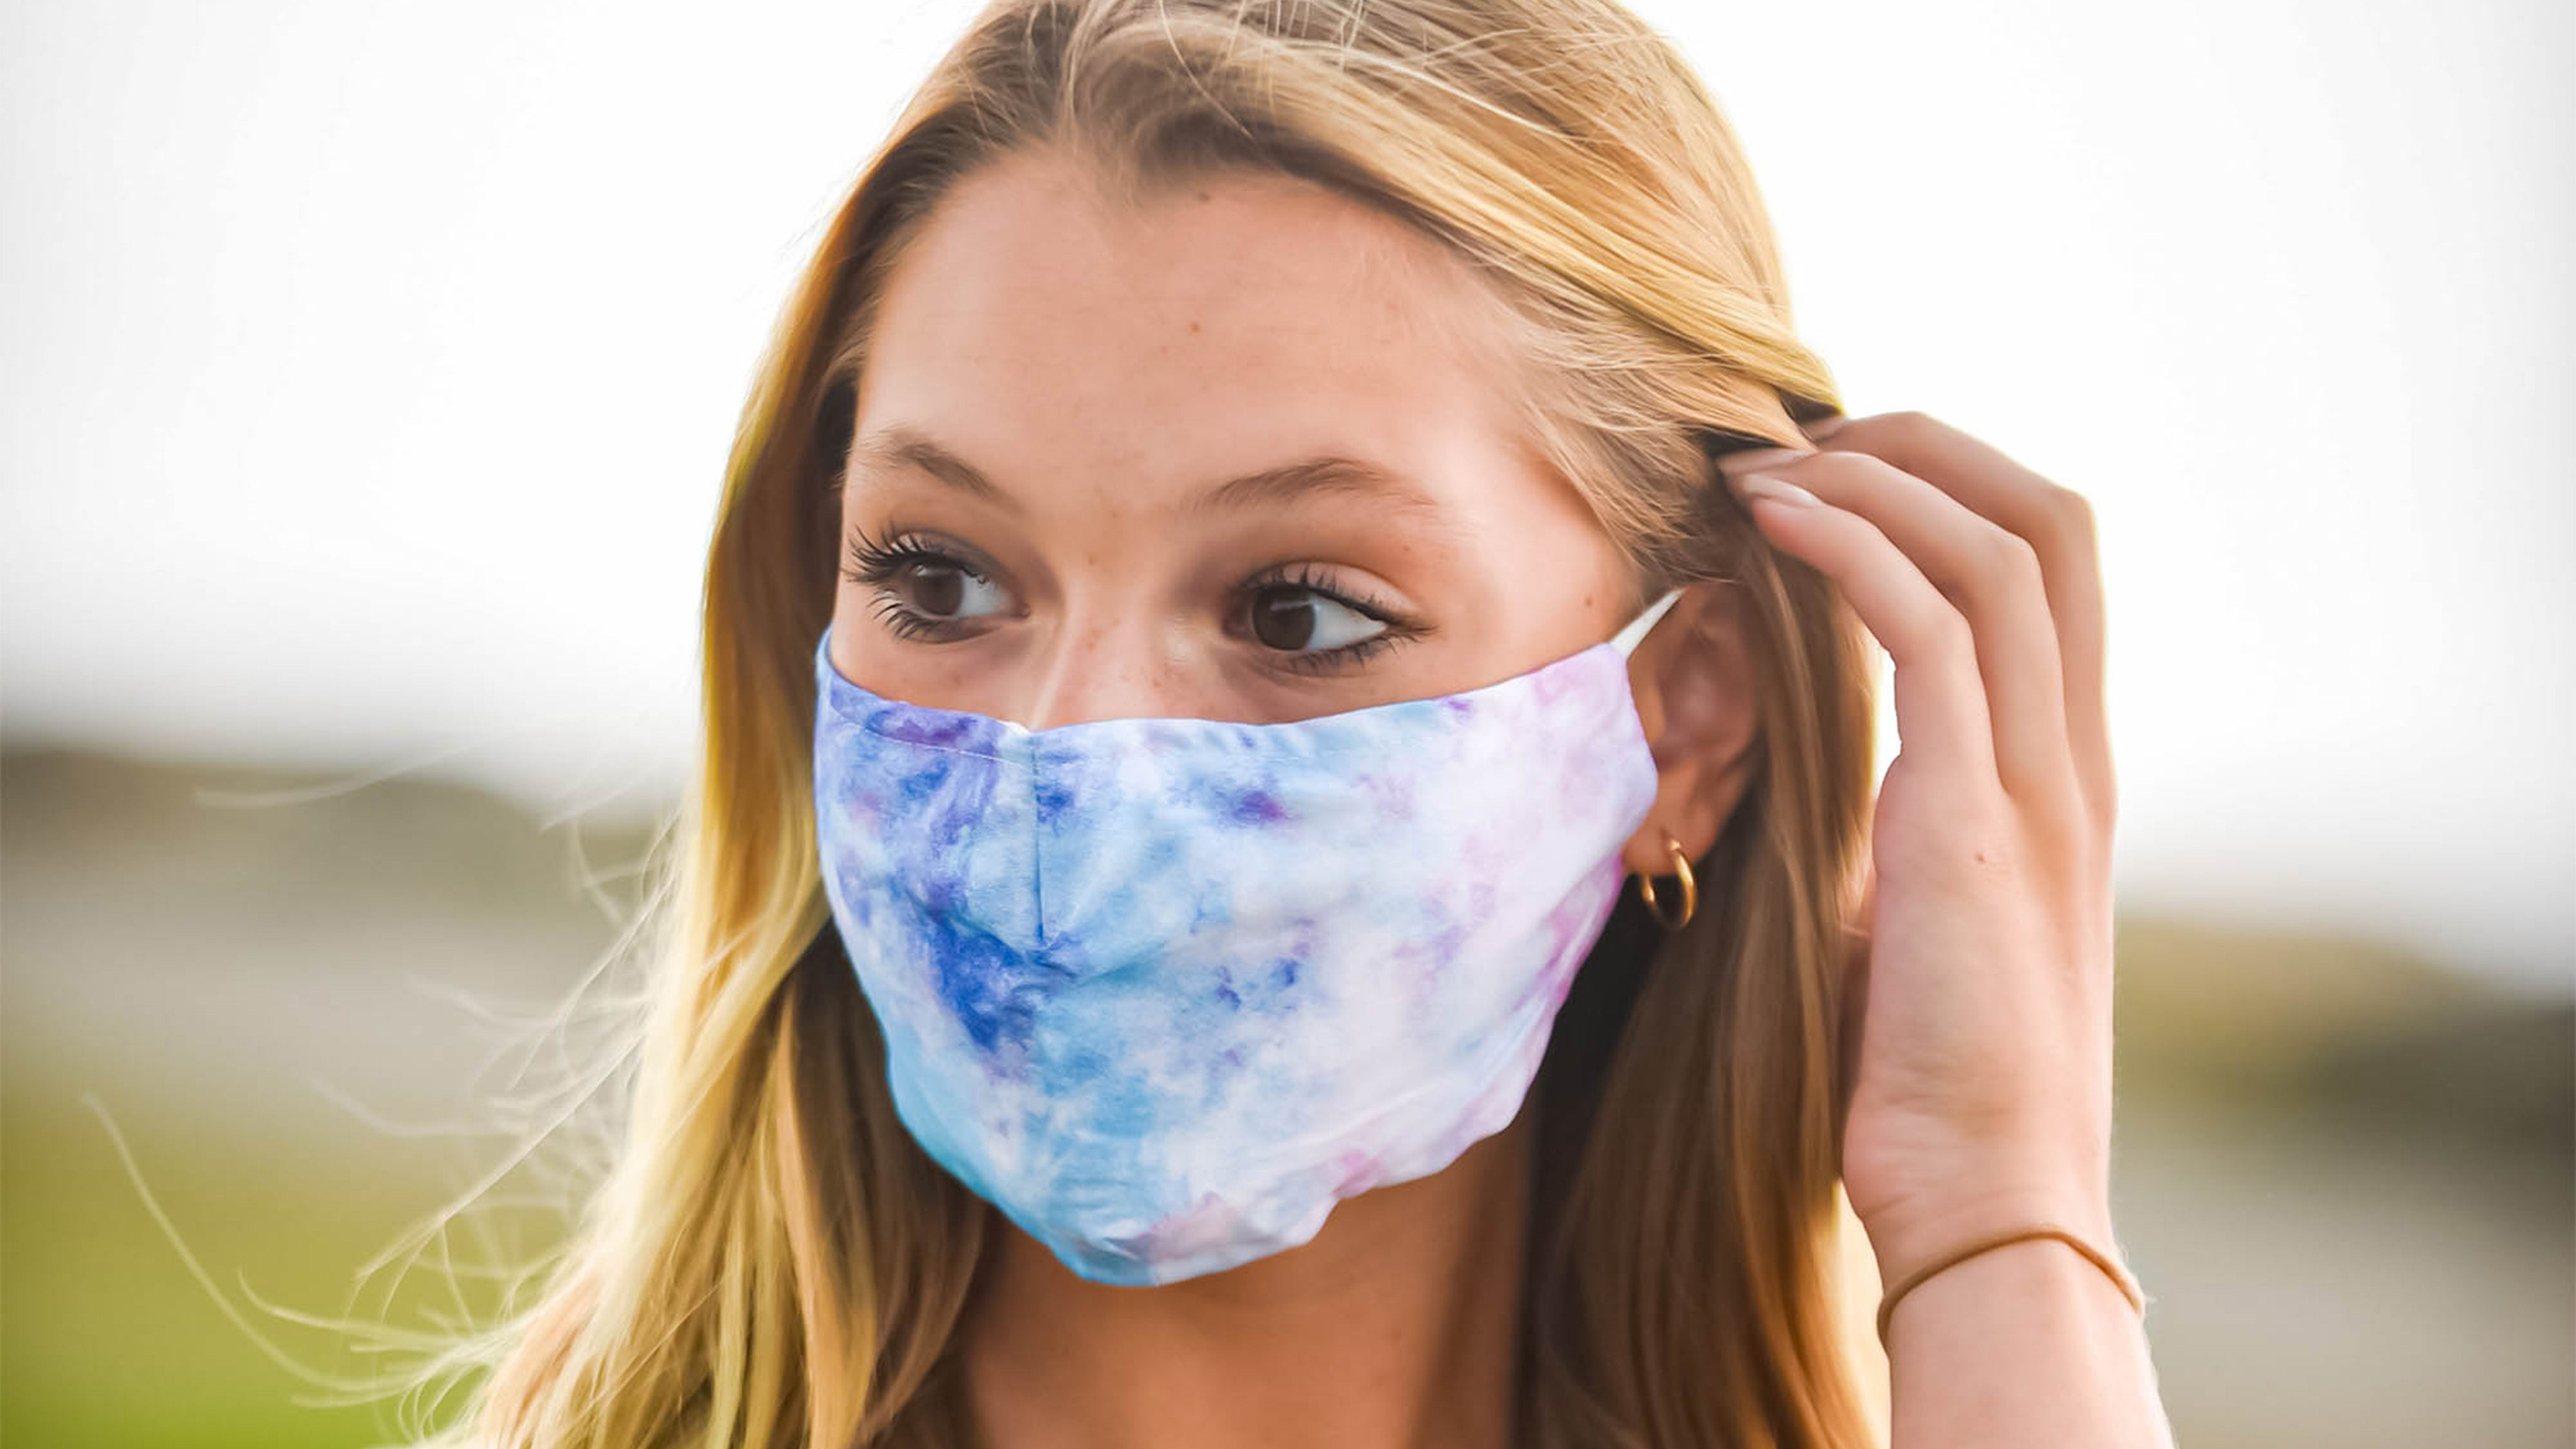 soft washable breathable cotton face masks for teens and adults with adjustable ear loops and nose bridge wire